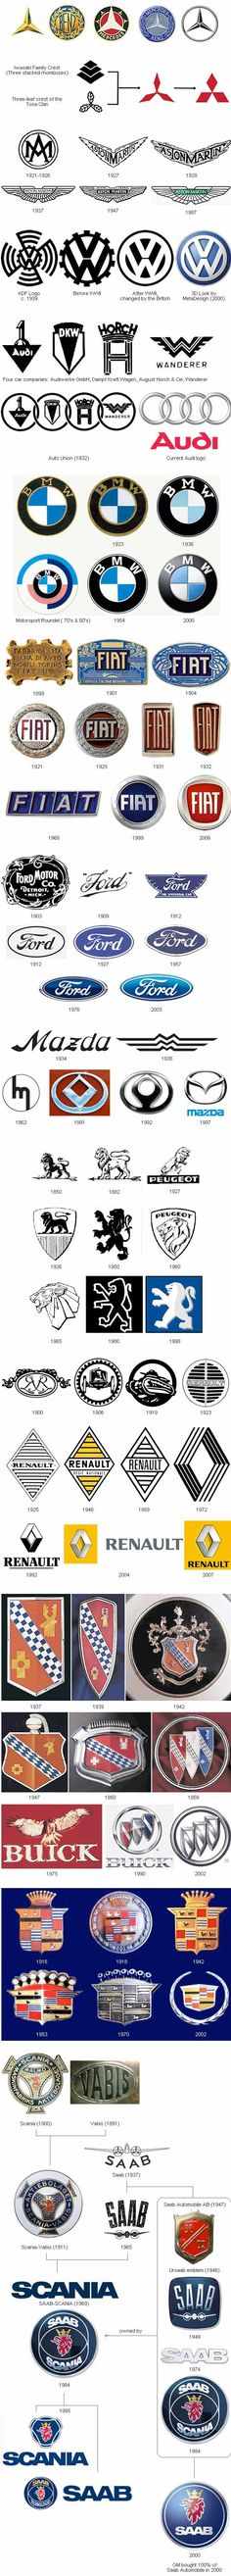 Evolution of auto logos Car Badges, Car Logos, Auto Logos, Diavel Ducati, Evolution, Car Brands, Car Manufacturers, Car Car, Sport Cars